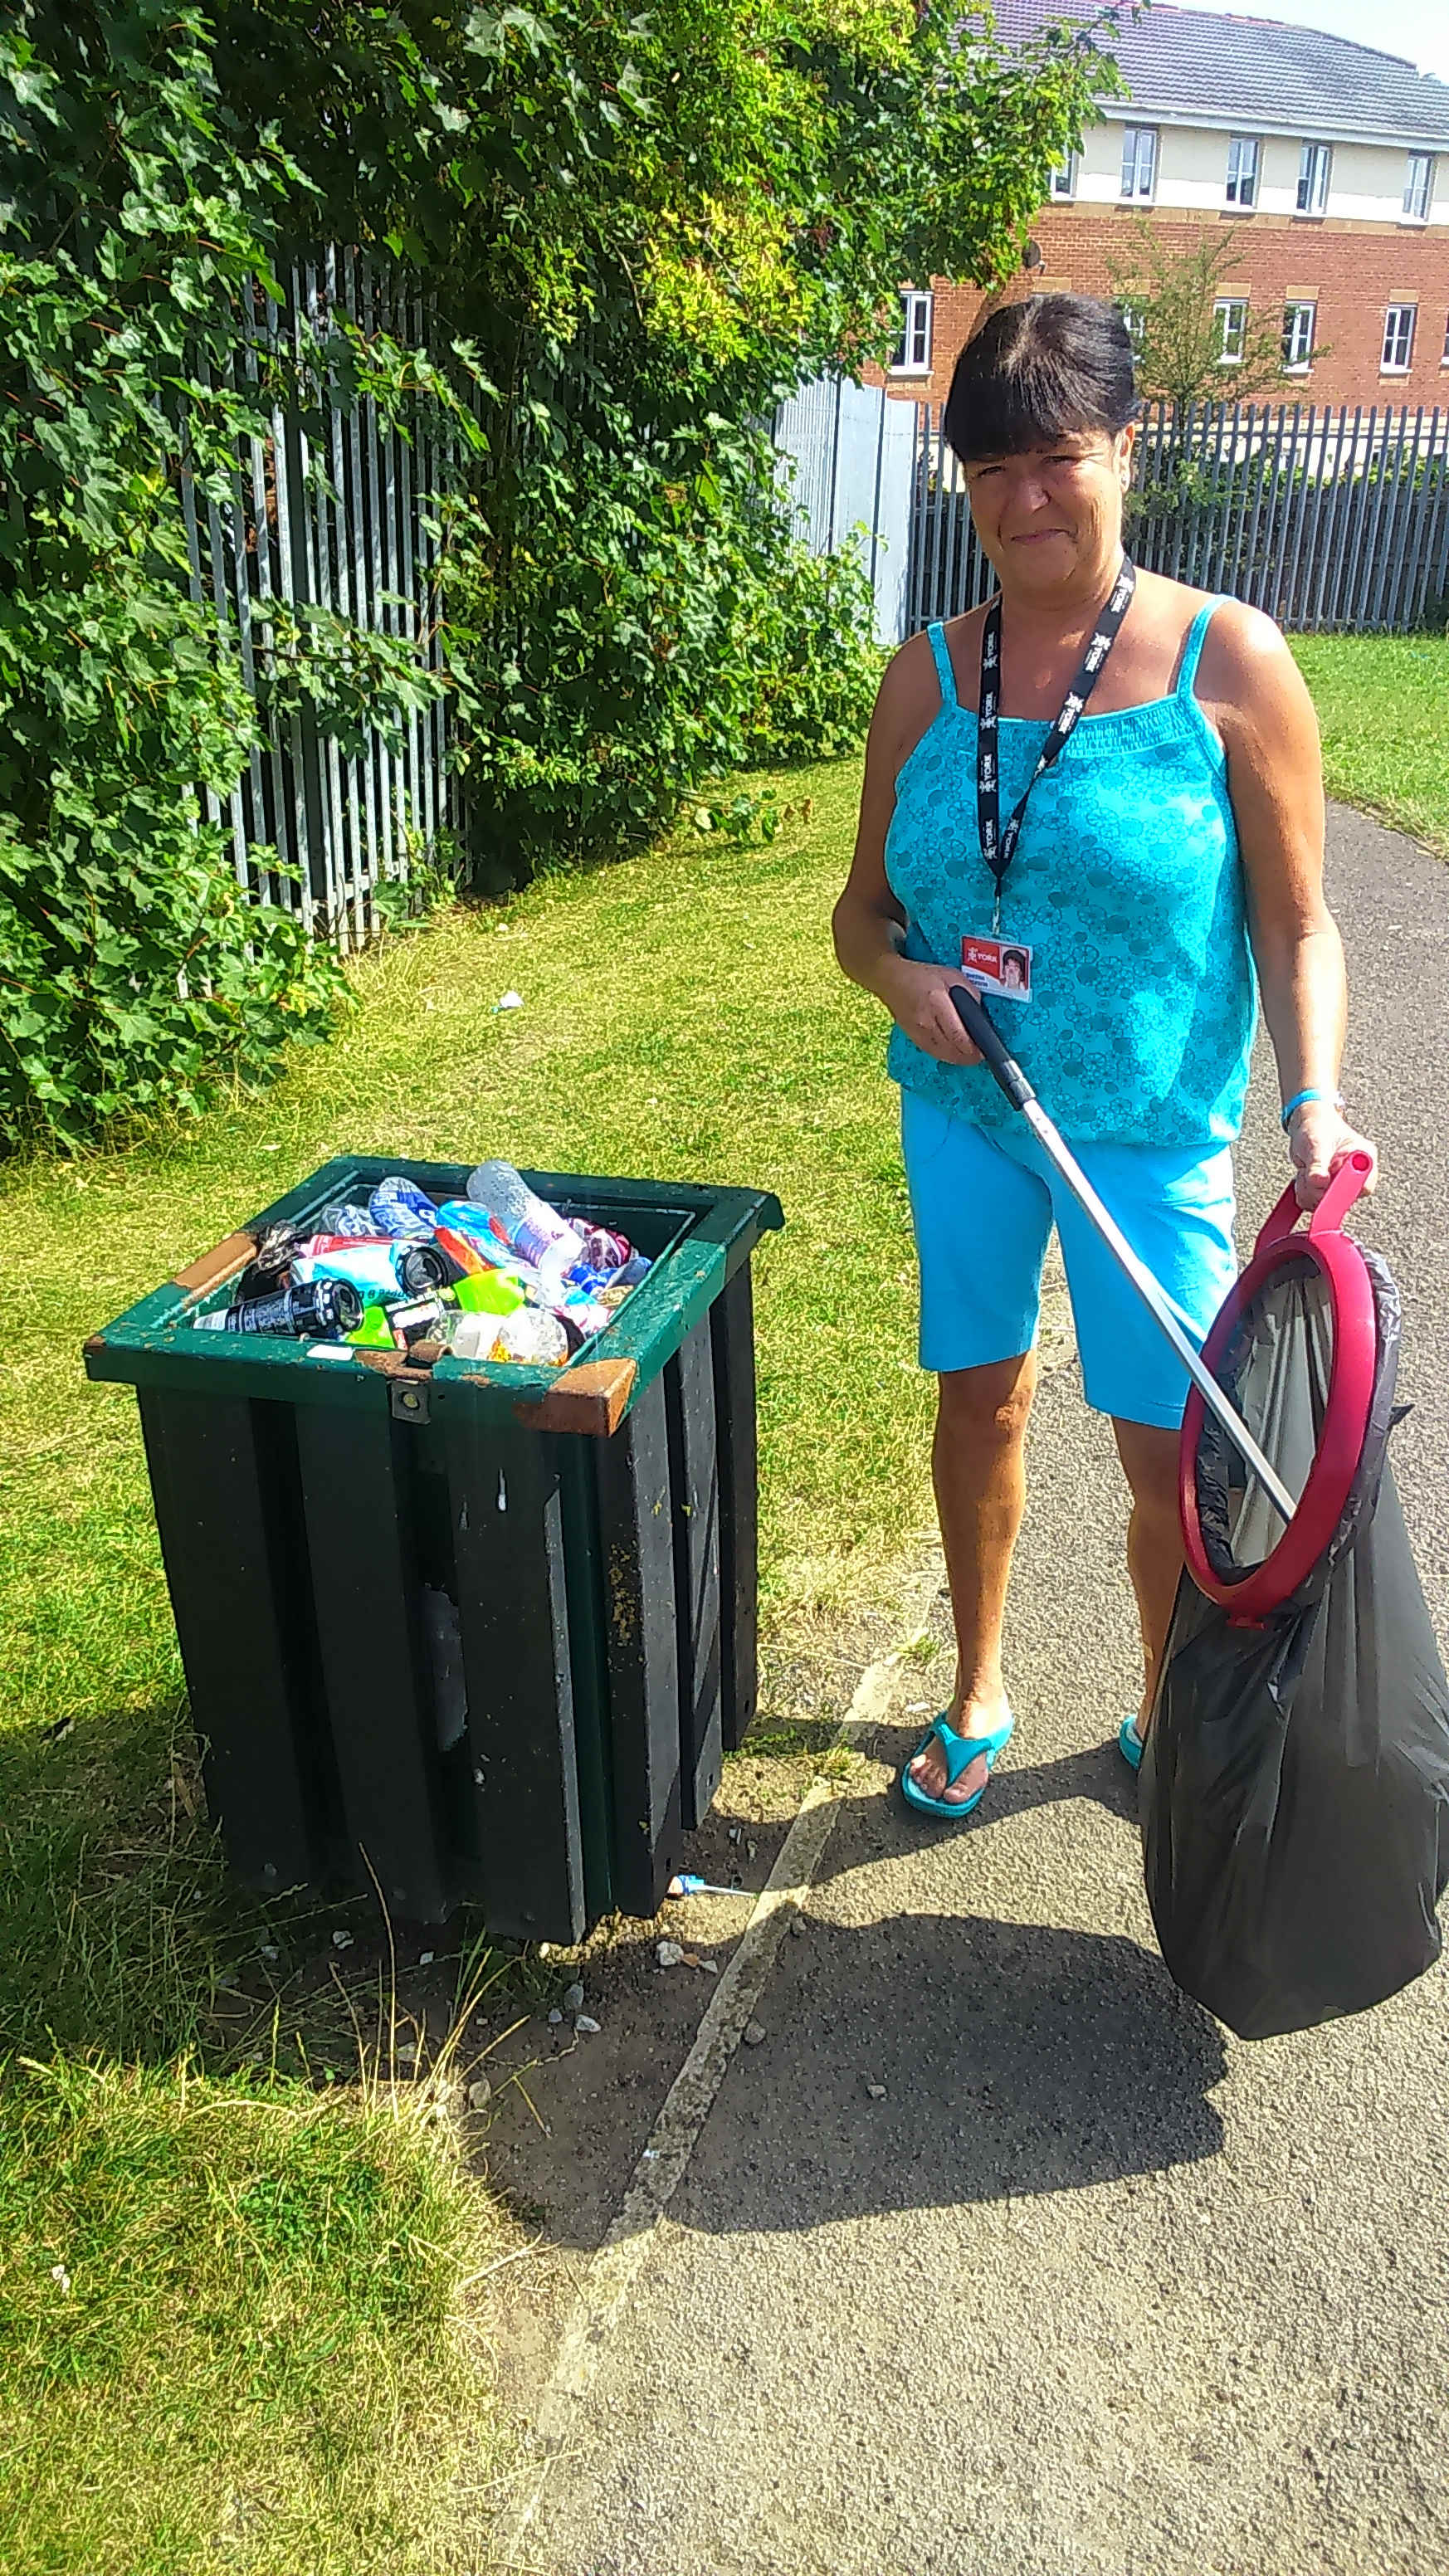 & a quick litter pick by Sheena in the Tedder Road park